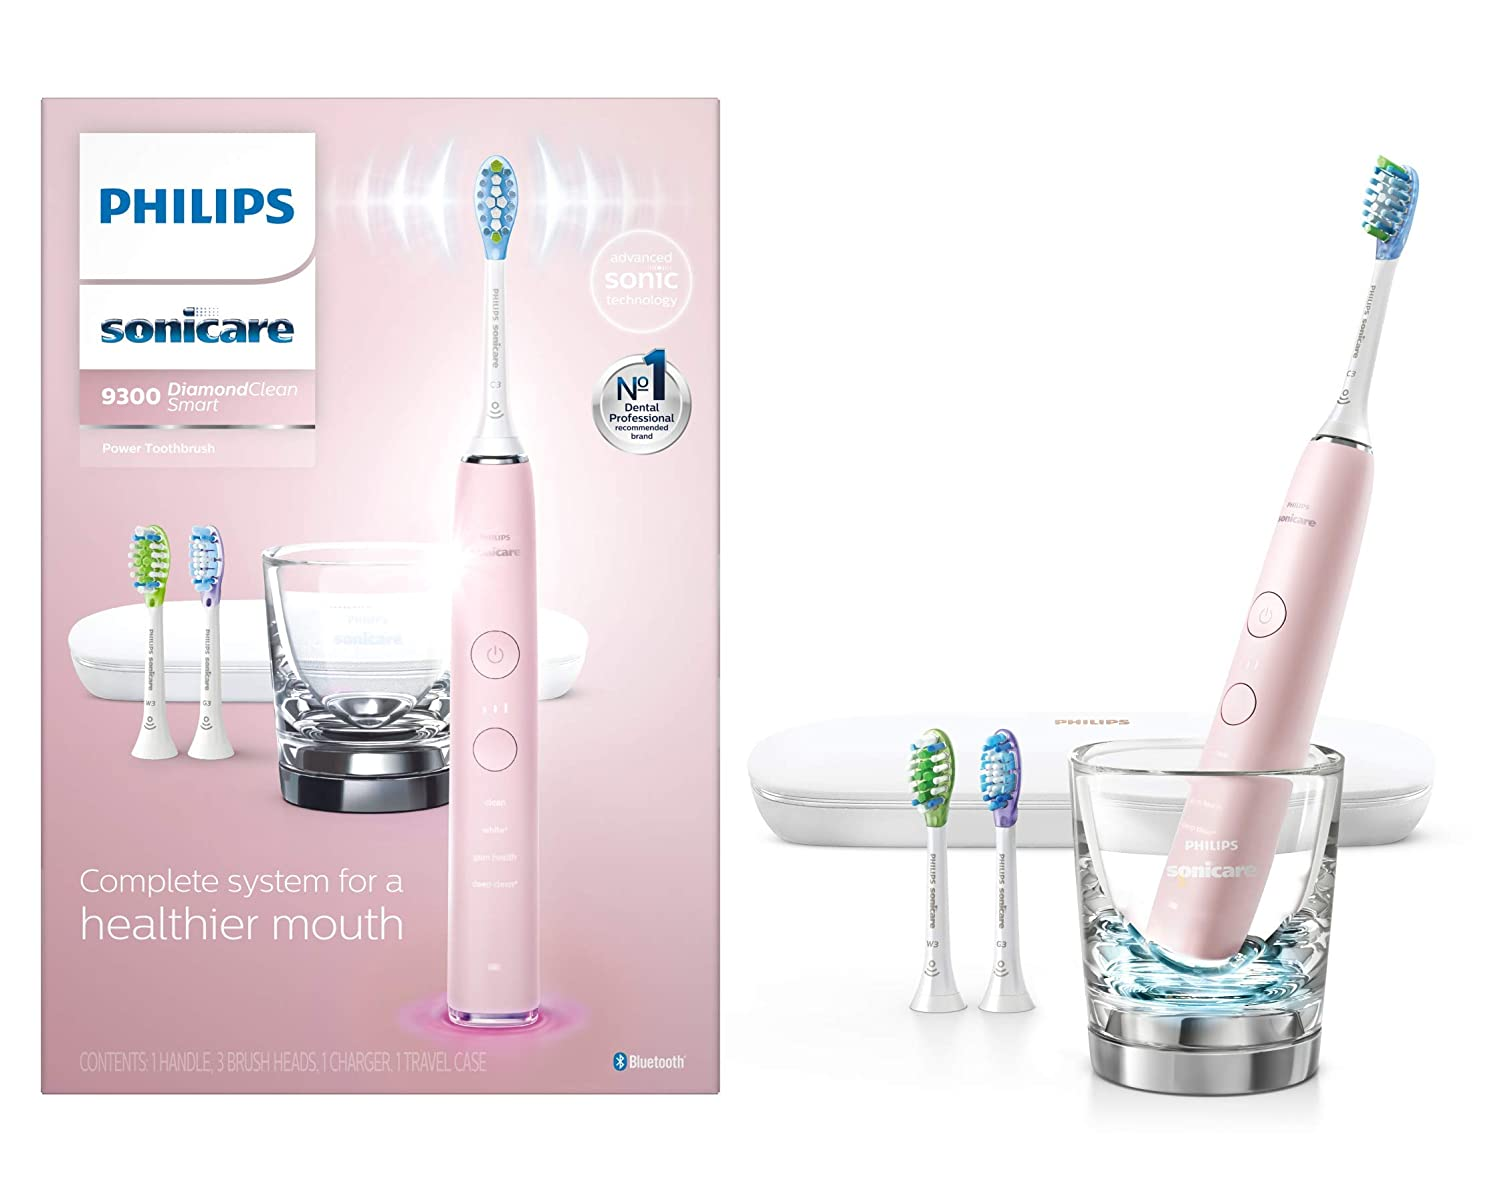 Philips Sonicare DiamondClean 智能蓝牙电动牙刷